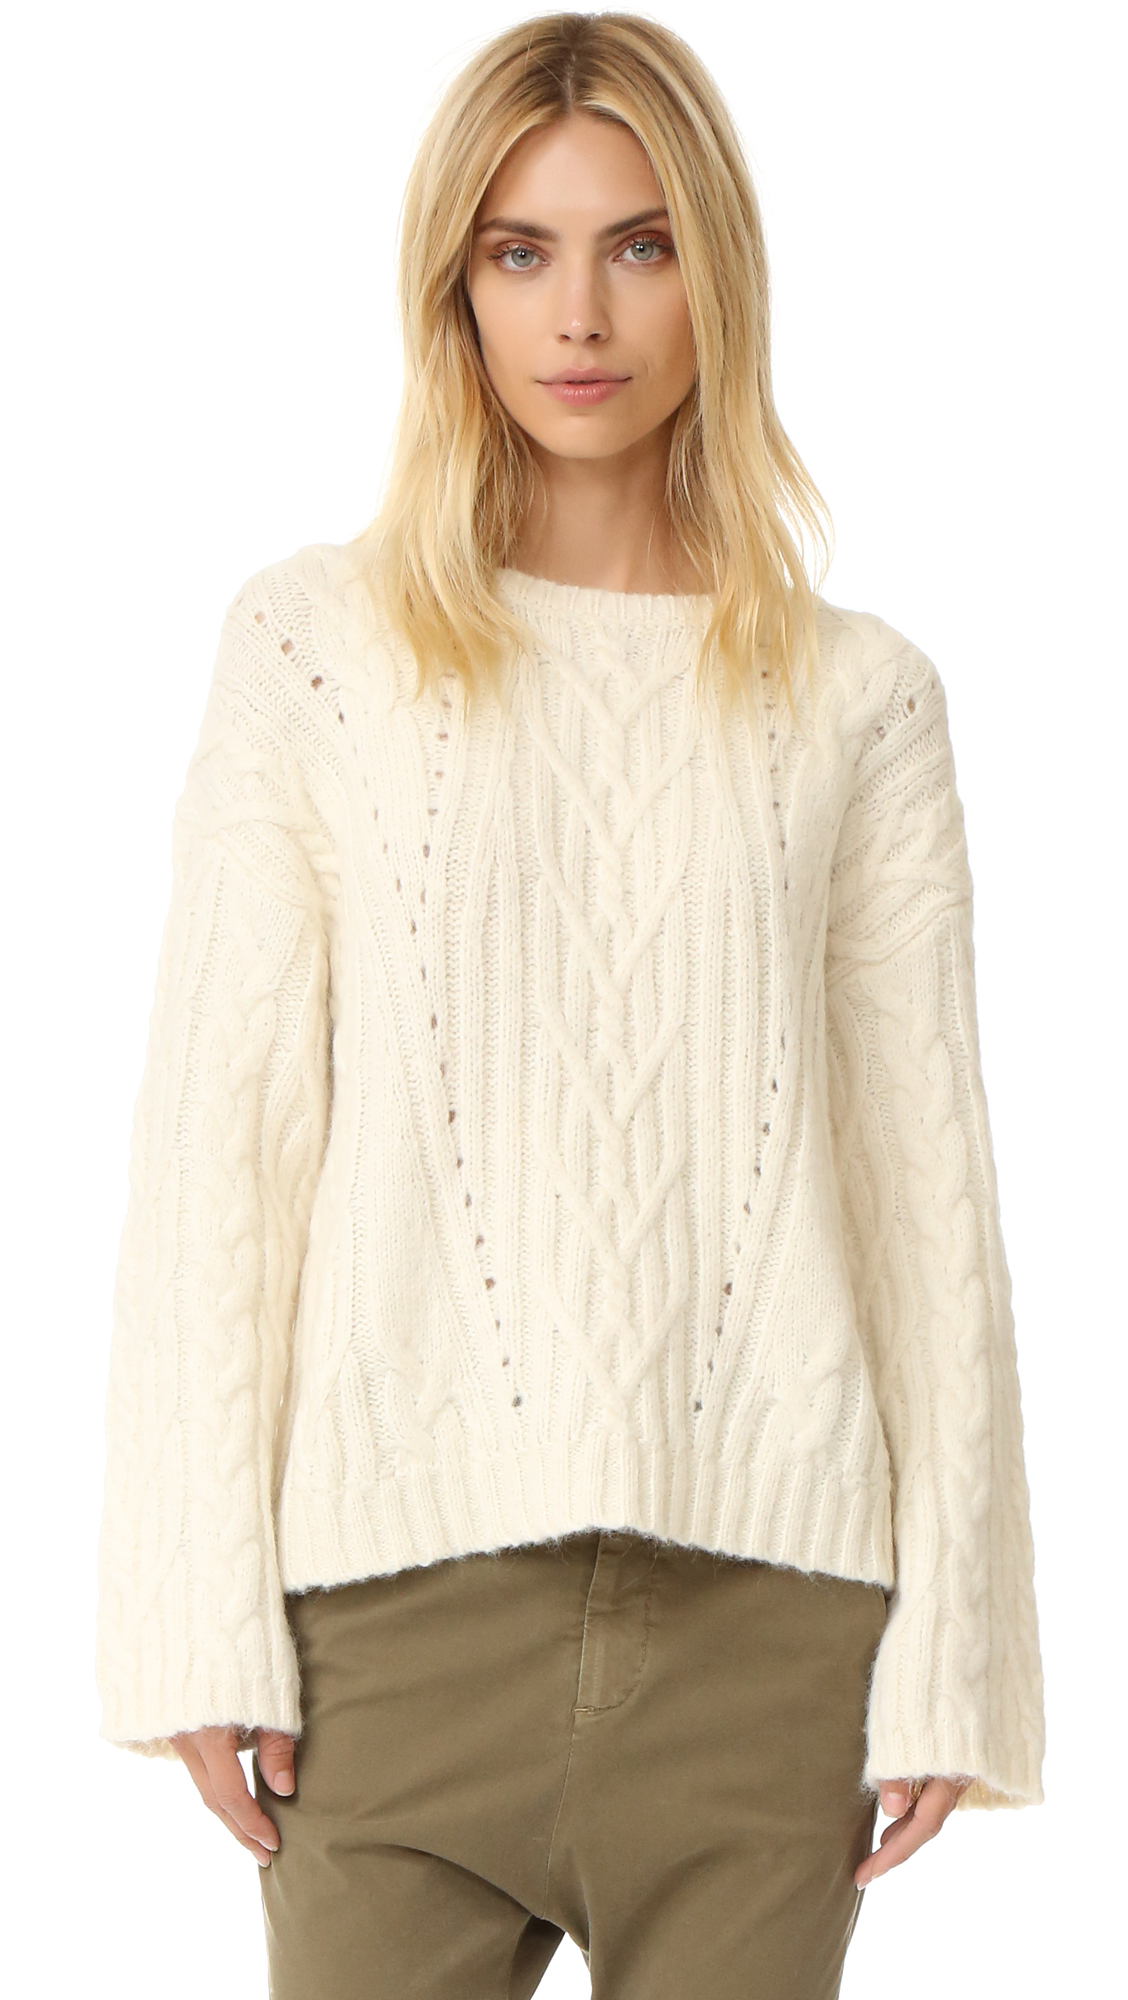 A slouchy Nili Lotan sweater in a warm alpaca blend. Intricate cable detailing adds a classic touch. Ribbed edges. Fabric: Cable knit. 68% alpaca/22% polyamide/10% wool. Dry clean. Imported, China. Measurements Length 1: 23.25in / 59cm, from shoulder to